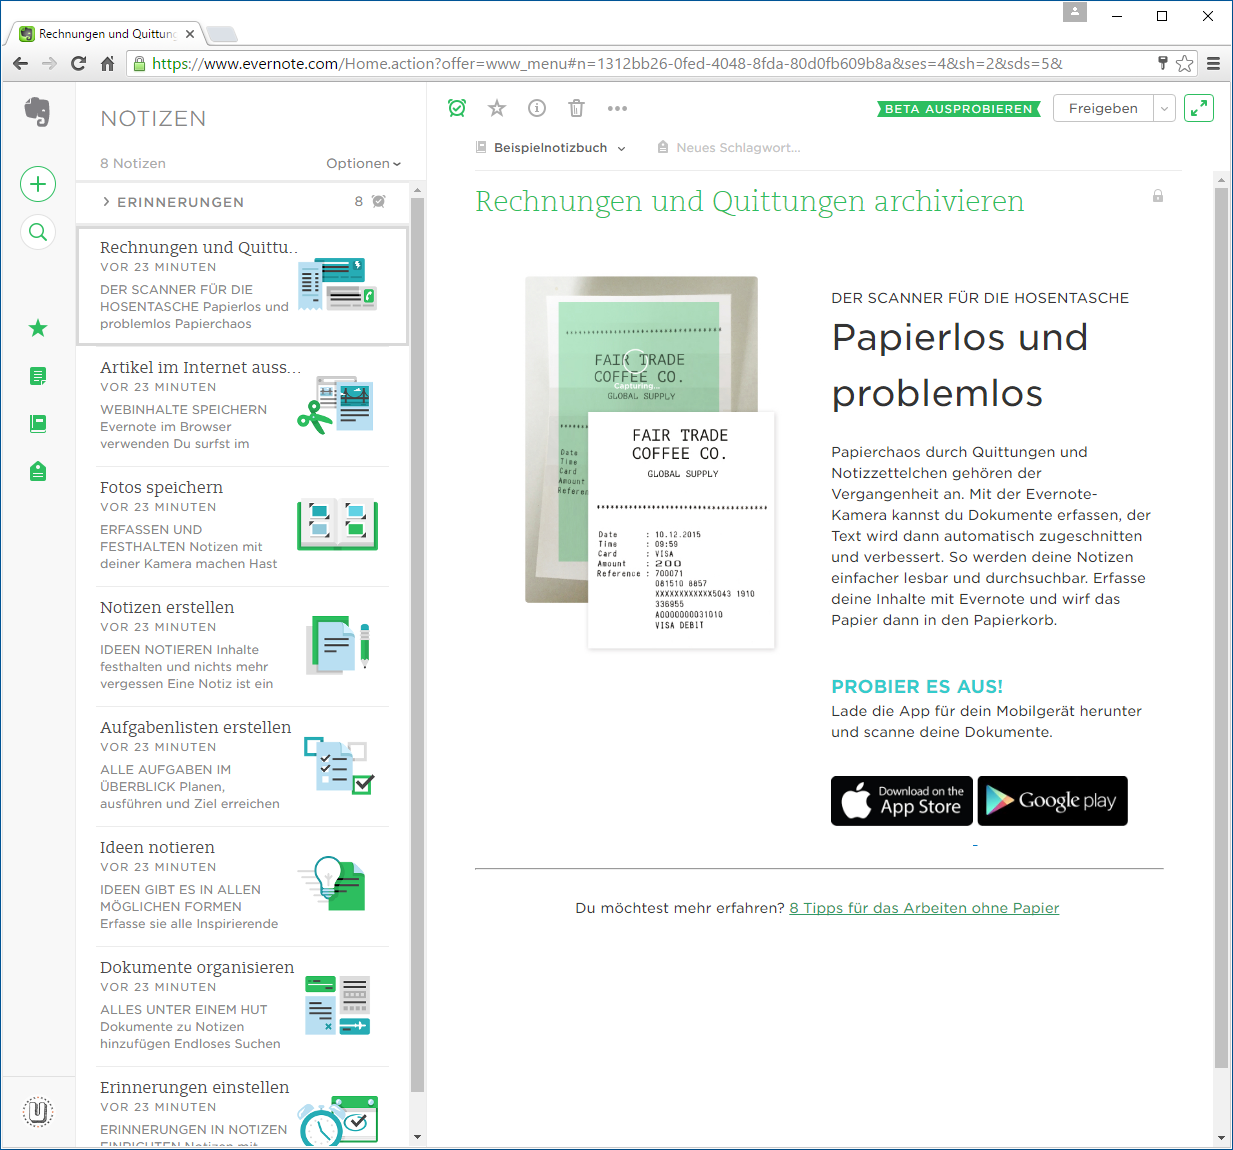 Zugriff auf Evernote per Browser